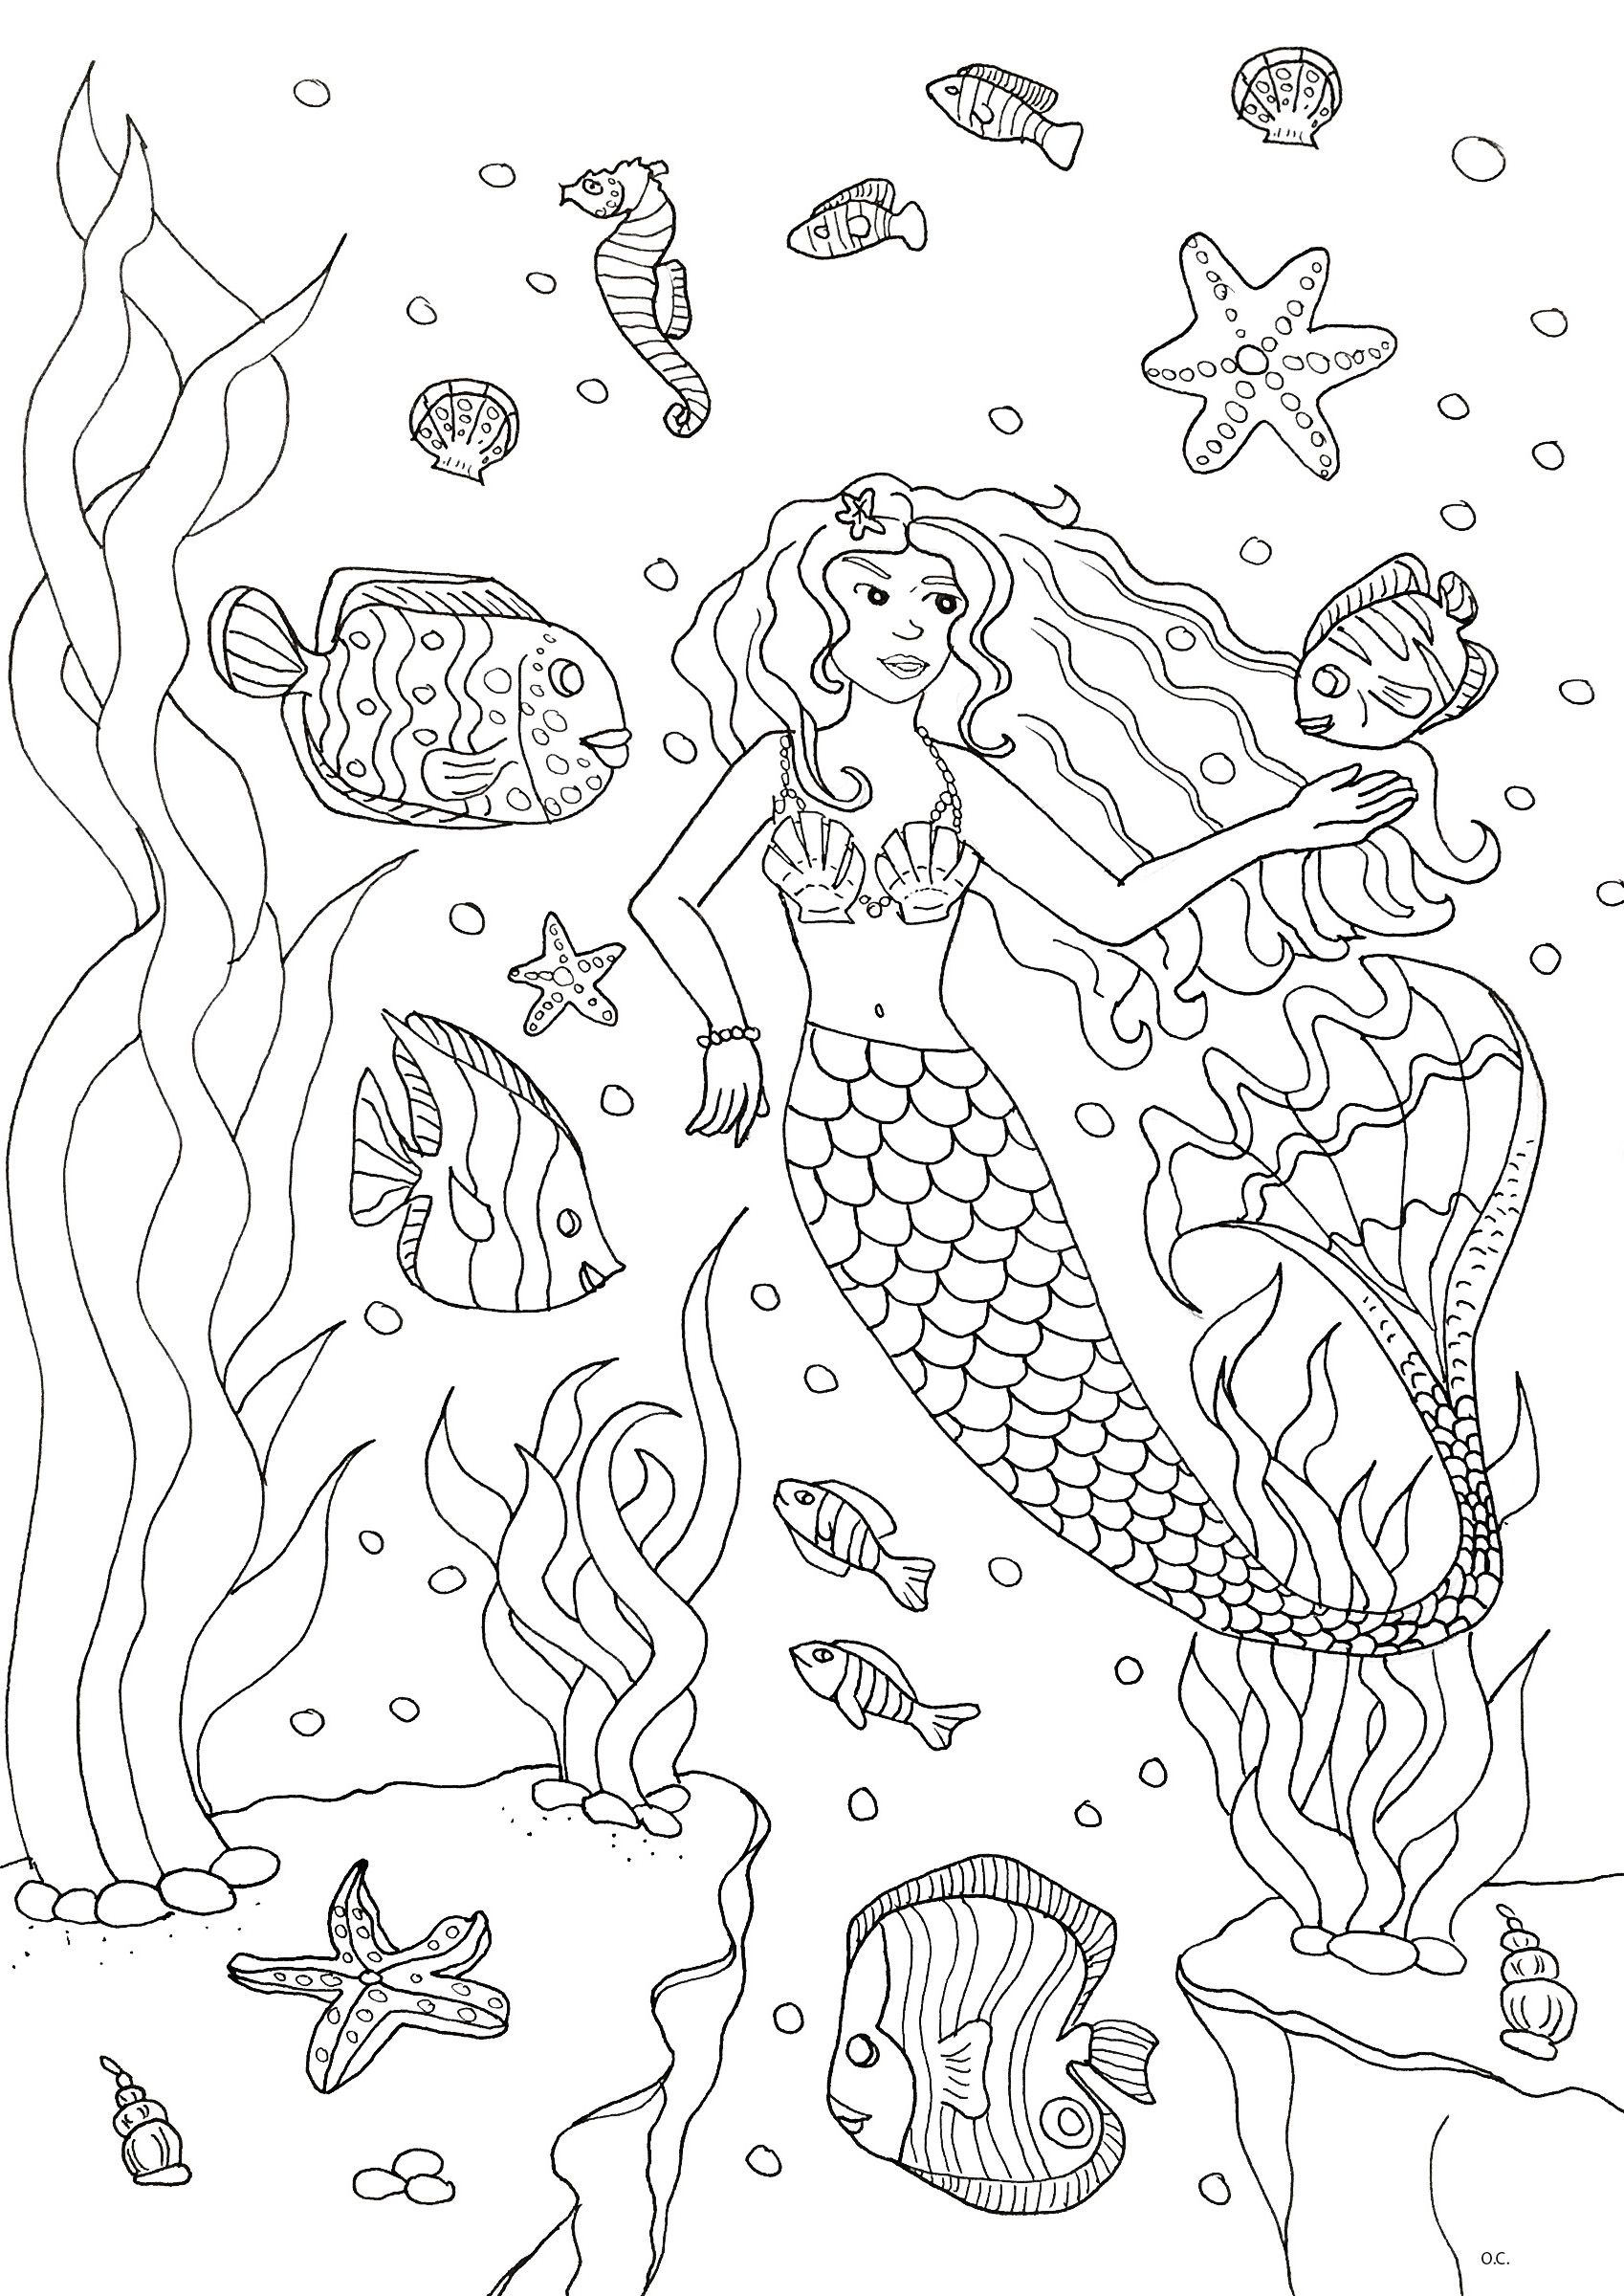 Here Are Our Coloring Pages Related To The Sea Fishes Imaginary Creatures Of The Deep You Will Mermaid Coloring Pages Coloring Pages Mermaid Coloring